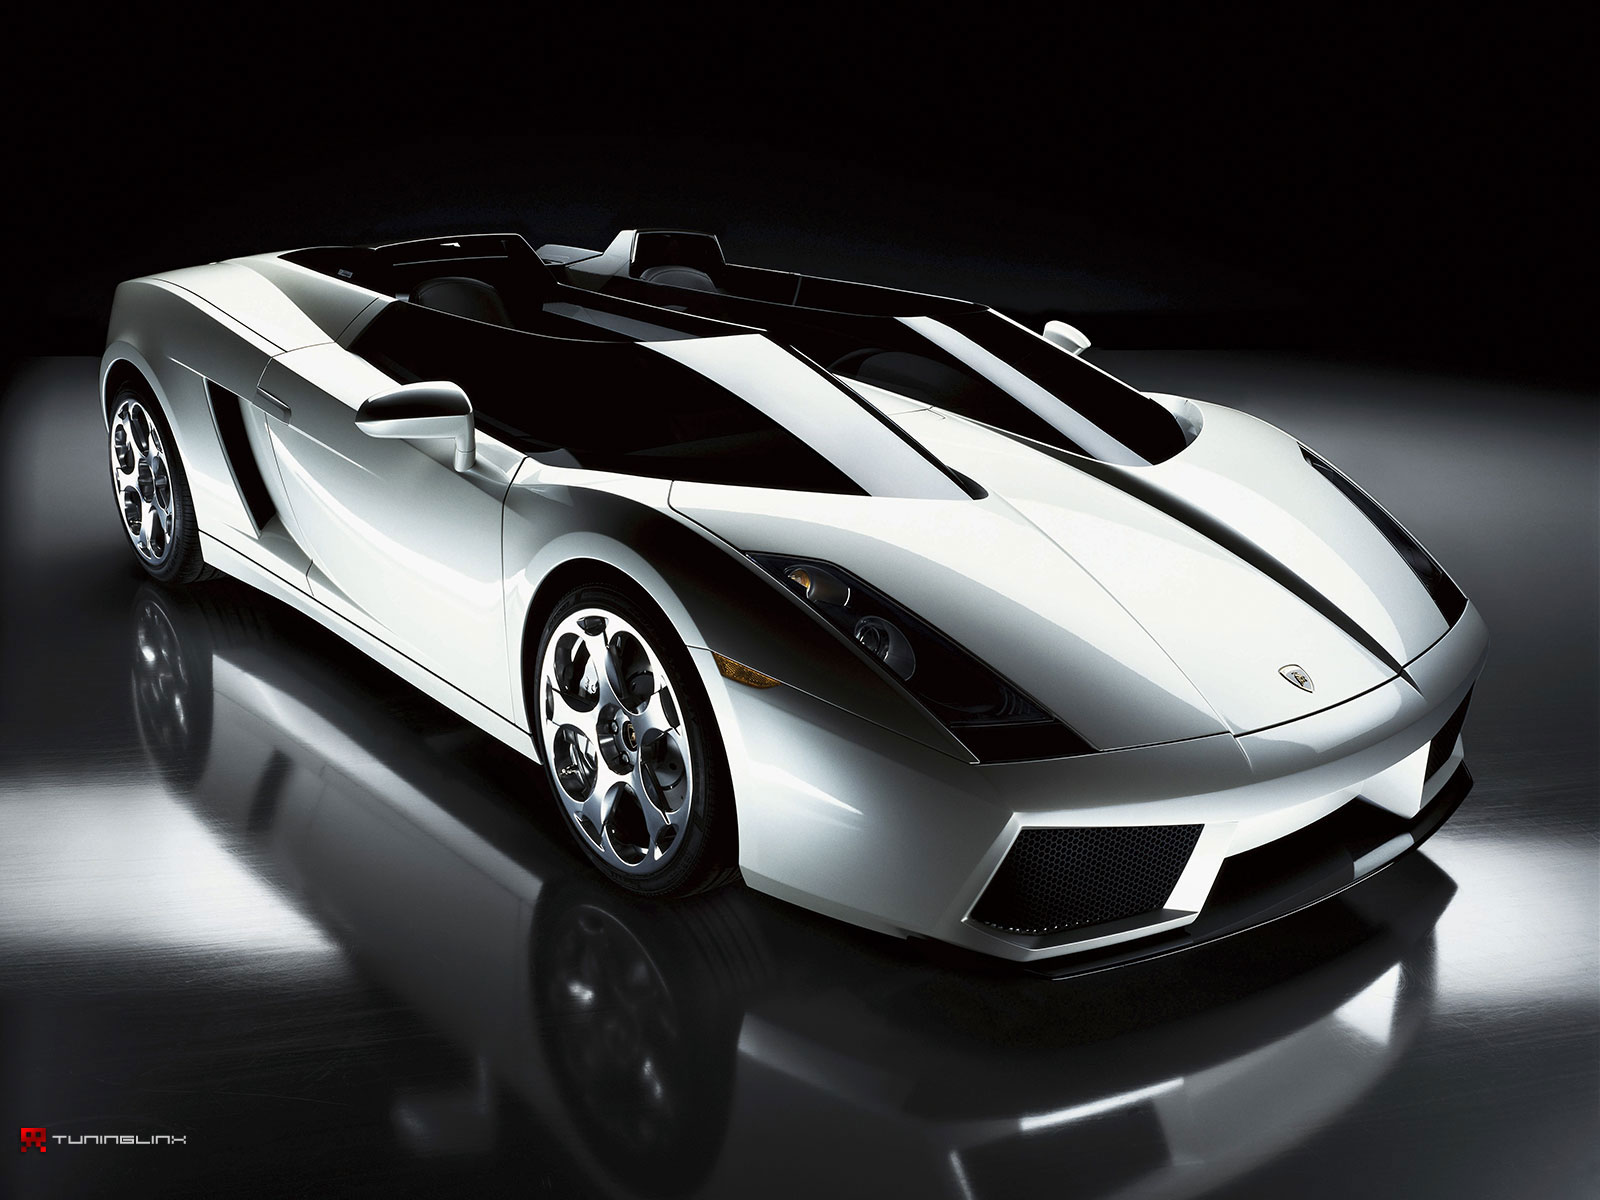 Lamborghini Car Wallpapers Hd Nice Wallpapers